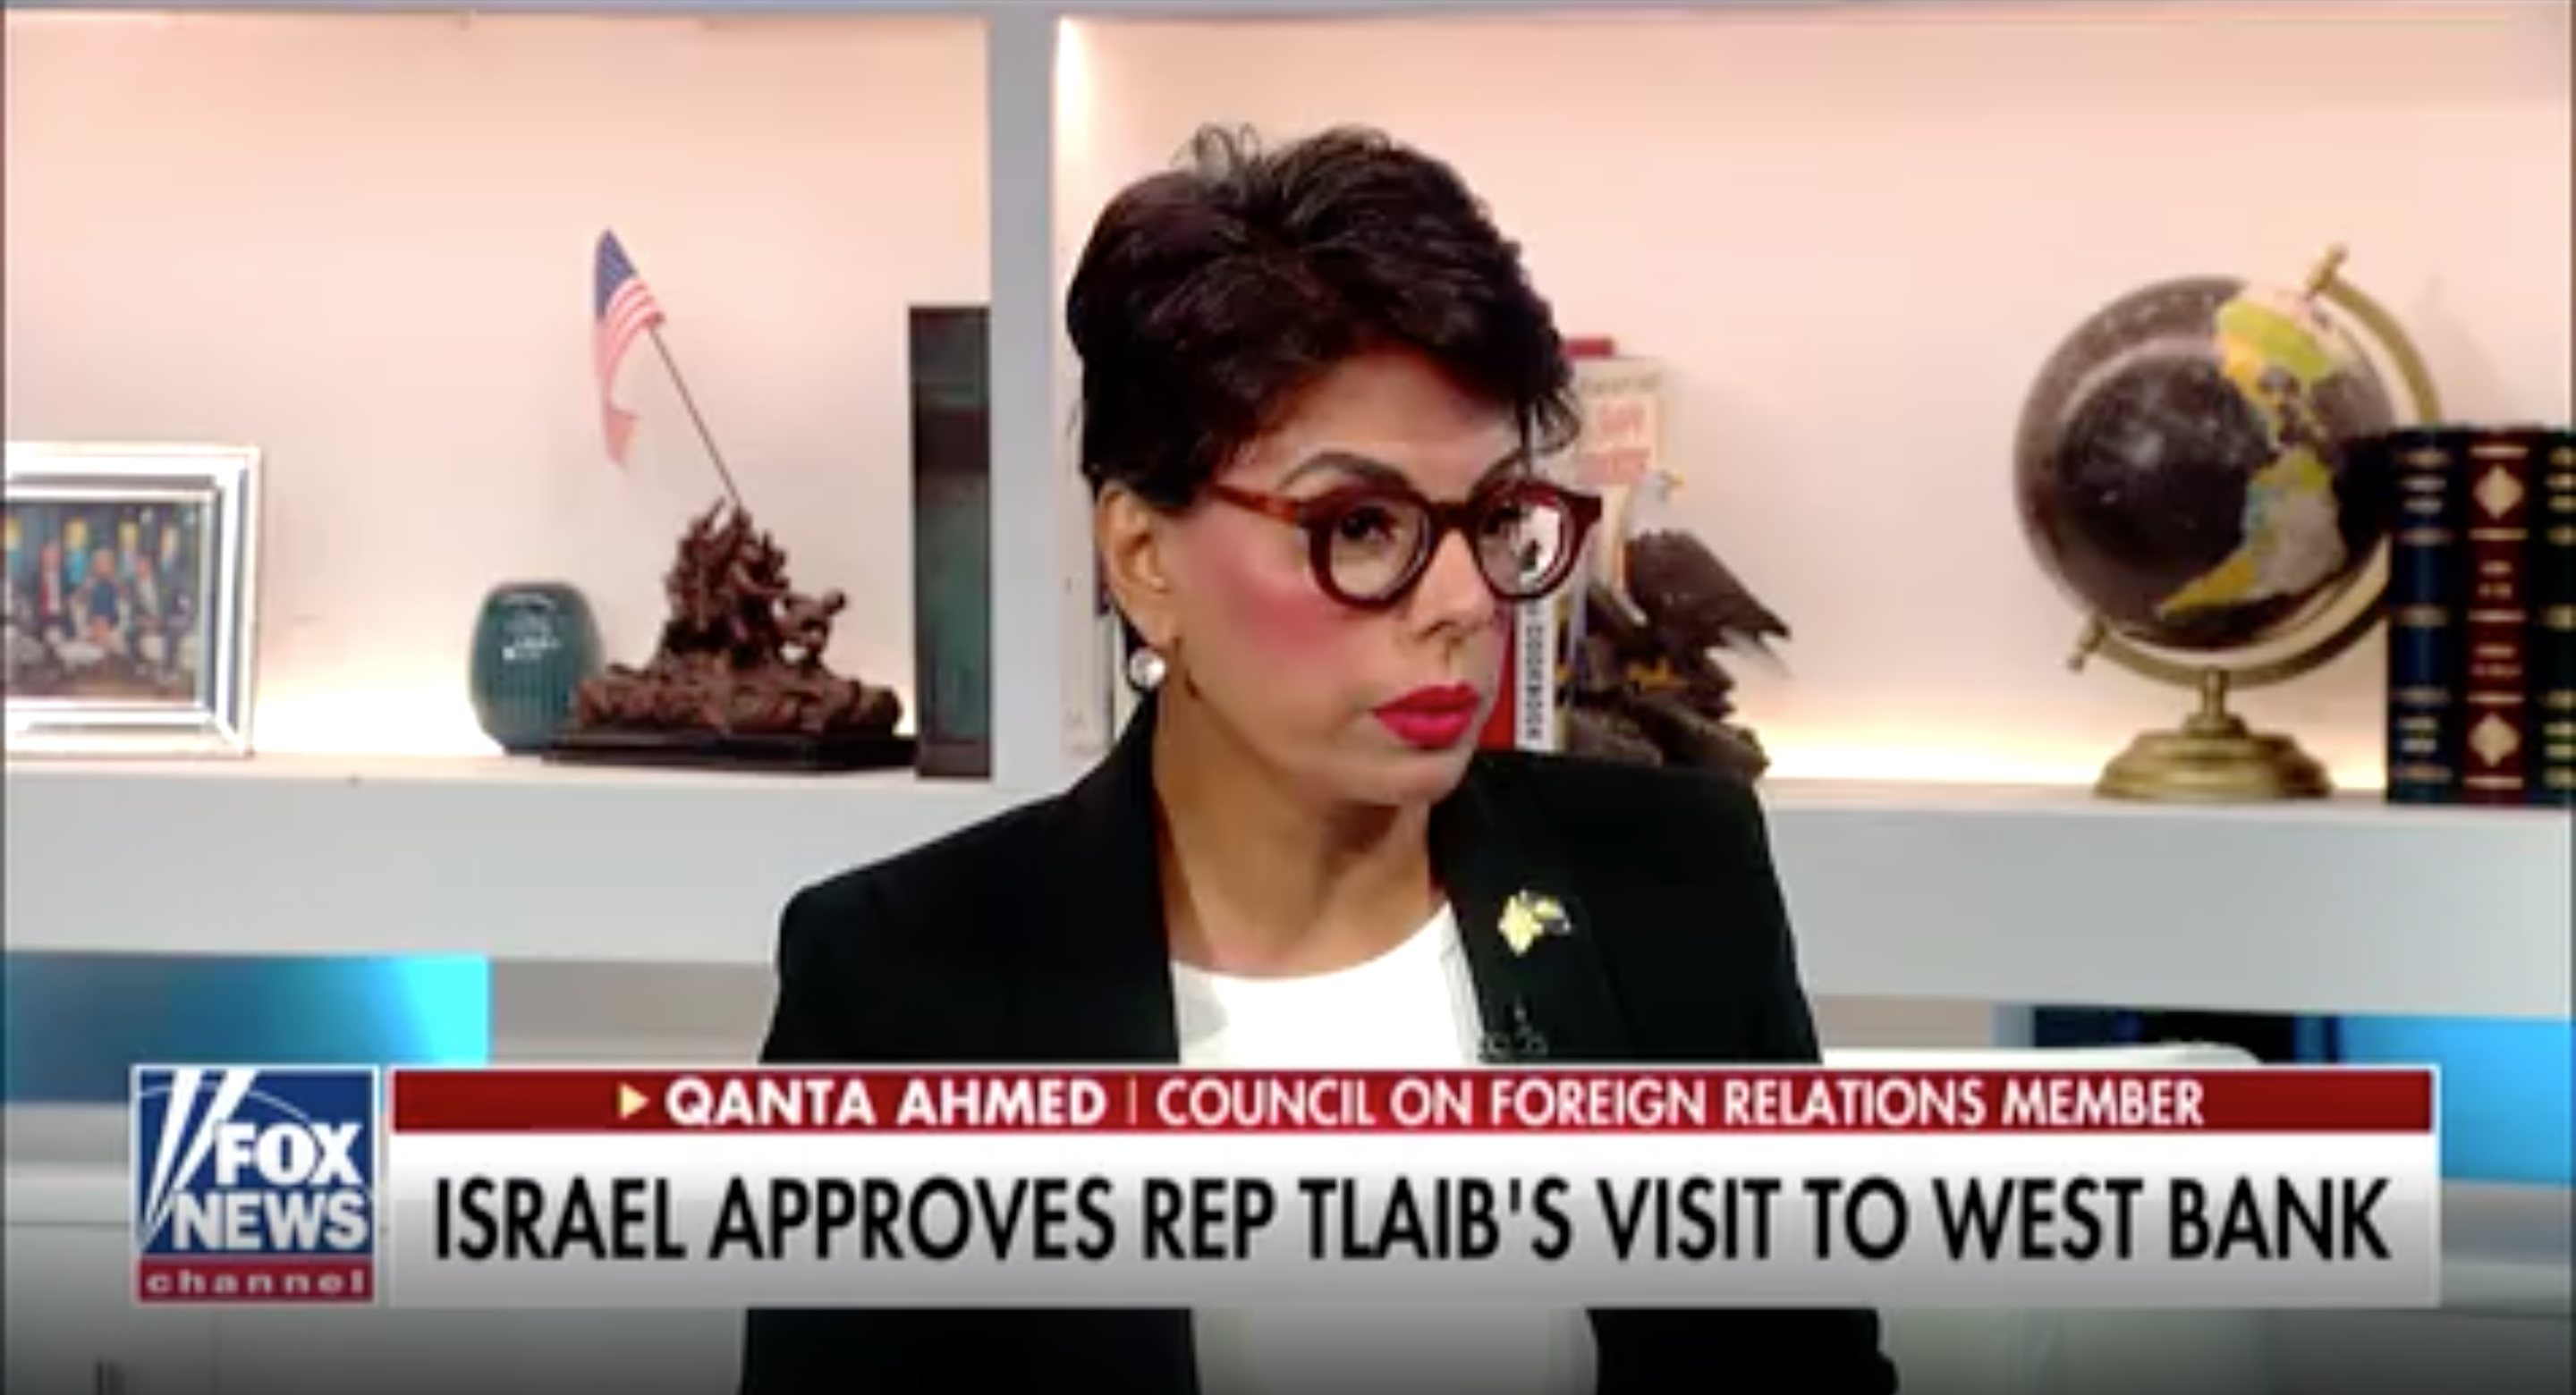 Westlake Legal Group Screen-Shot-2019-08-16-at-9.09.10-AM Council on Foreign Relations member says Tlaib's approval to visit on humanitarian grounds was likely Joshua Nelson fox-news/shows/fox-friends fox-news/media/fox-news-flash fox news fnc/media fnc article 62a2a3a3-eb66-558e-a3c7-d7c25ee97ad7